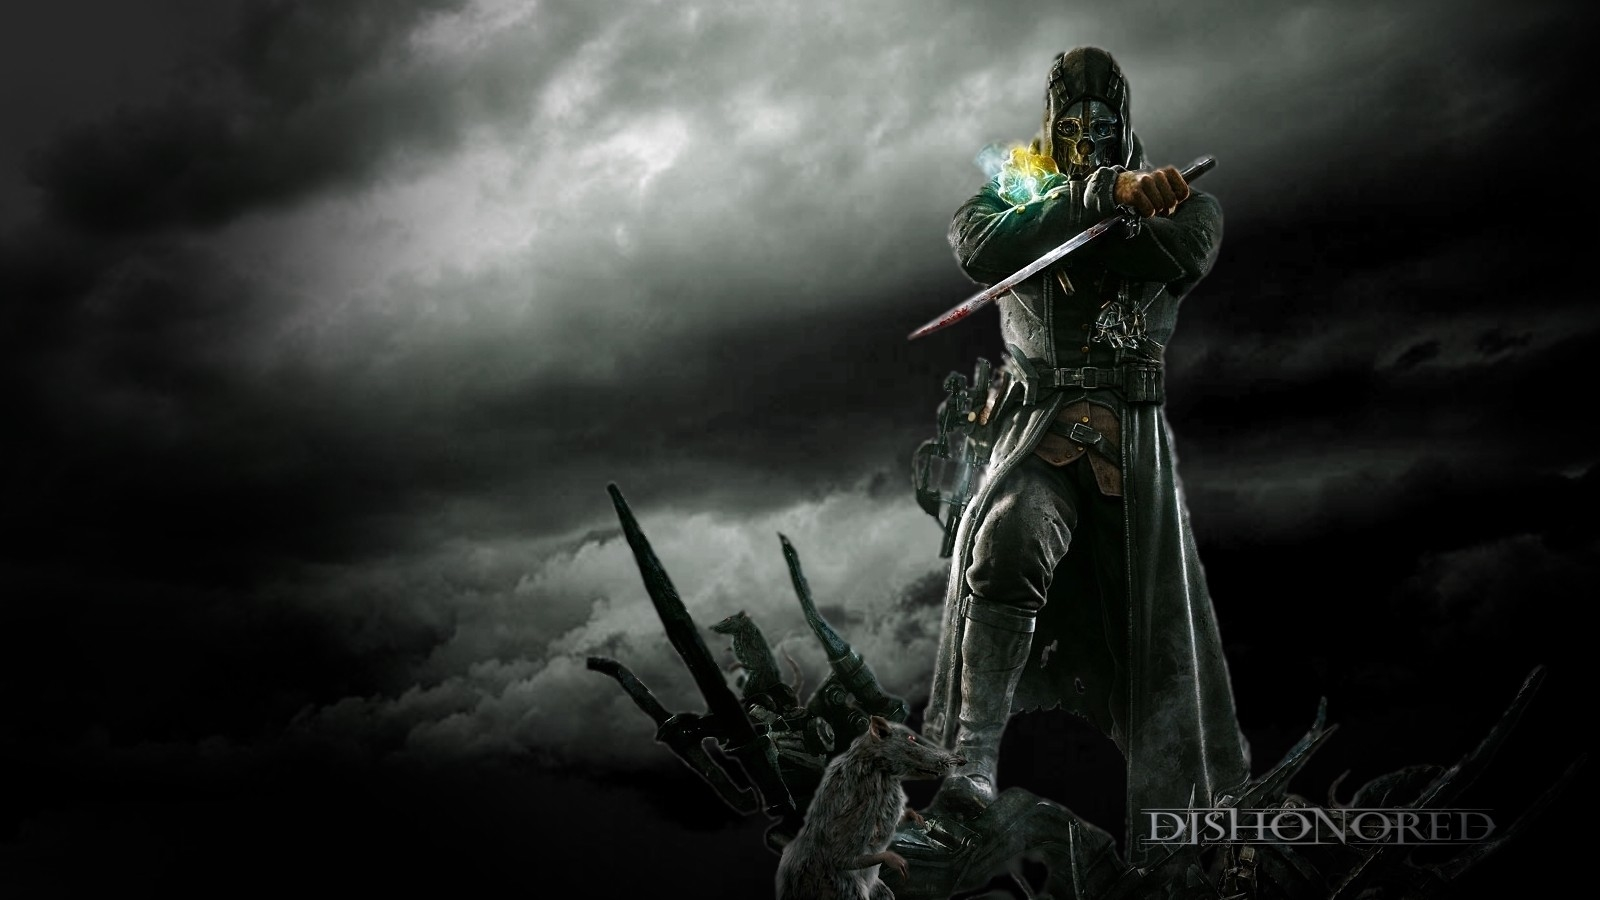 dishonored A4